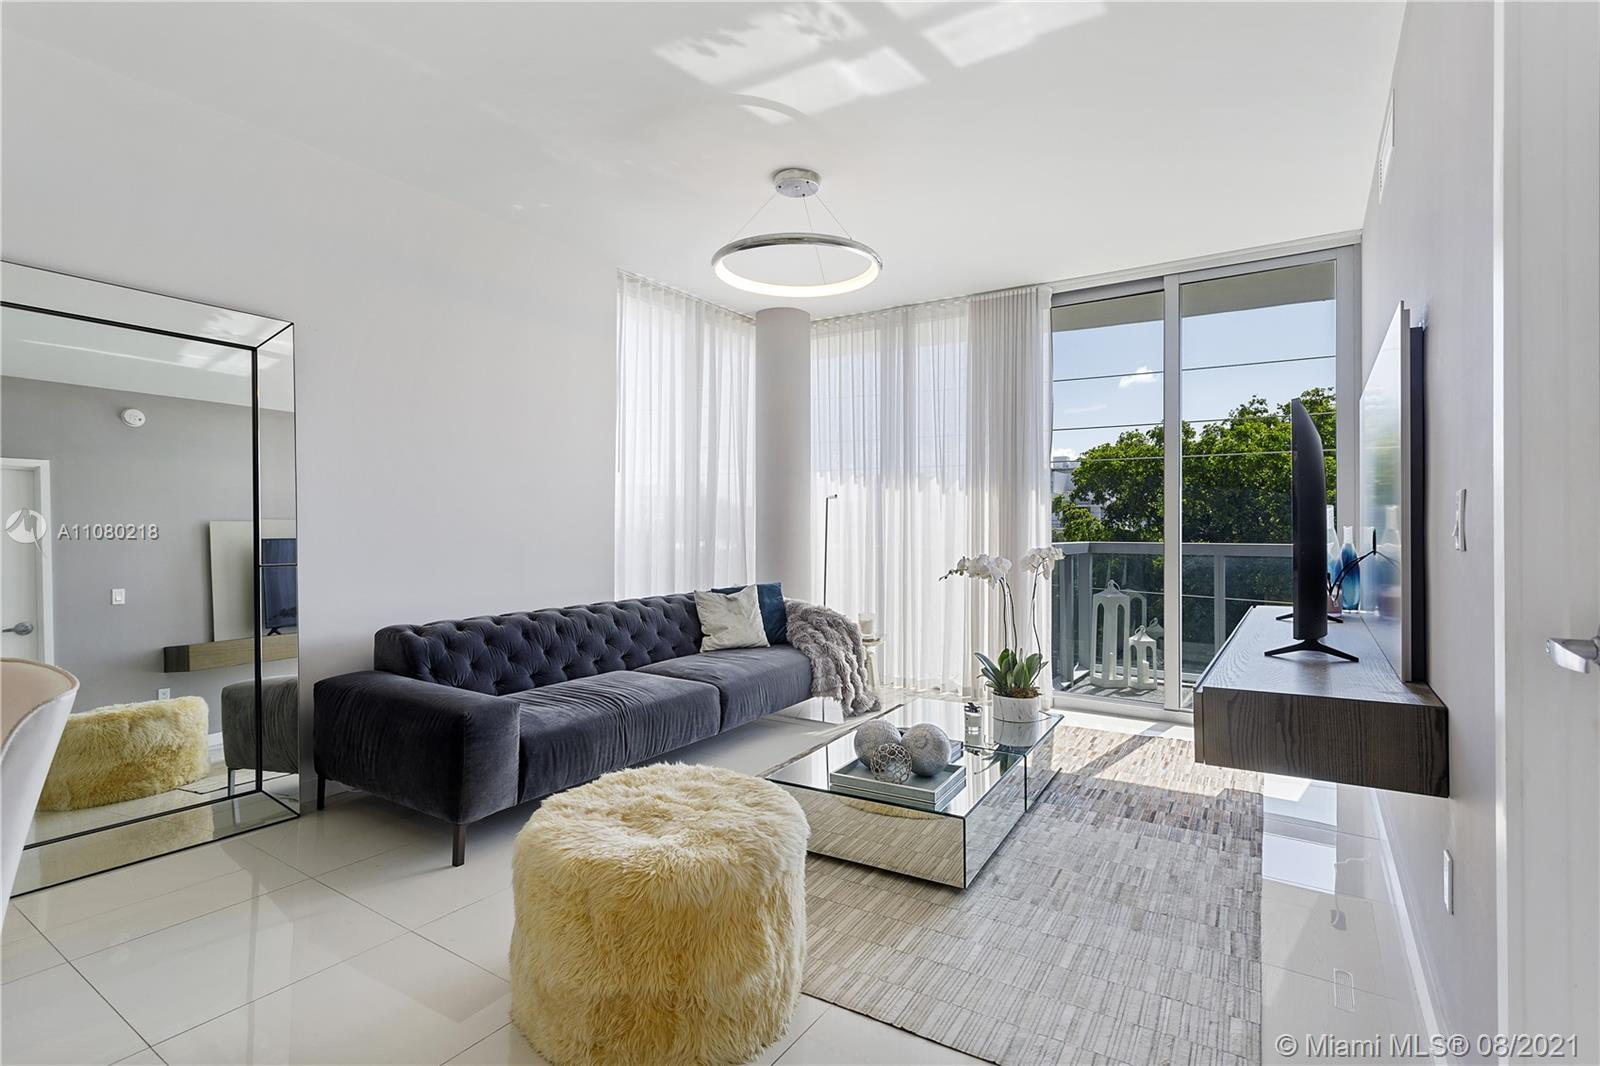 SHOWING ONLY MONDAYS from 1pm-2pm.NO AIRBNB/NO SHORT TERM.TENANT til JUN 2022. 2BEDS/2BATHS Unit comes with 1 Assigned Marina Slip of  24' ft. in a boutique building of only 8 floors and 57 residences. Kitchen with European -style cabinetry, polished granite counter tops, marble floors & jacuzzi in bathrooms, White ceramic floors thru-out the apartment. Views towards the Street. Gorgeous views From the Rooftop pool towards bay and sunsets. Gym & Marina. Bal Harbor island is surrounded by Biscayne Bay, Indian Creek, Town of Surfside, and Bal Harbor. Walking Distance to Beach, restaurants and to the renowned Bal Harbor Shops. Best Public schools: Ruth K. B., Harbor K-8, Nautilus Middle School, Miami Beach Senior High School. Unit faces Skyline & Street.